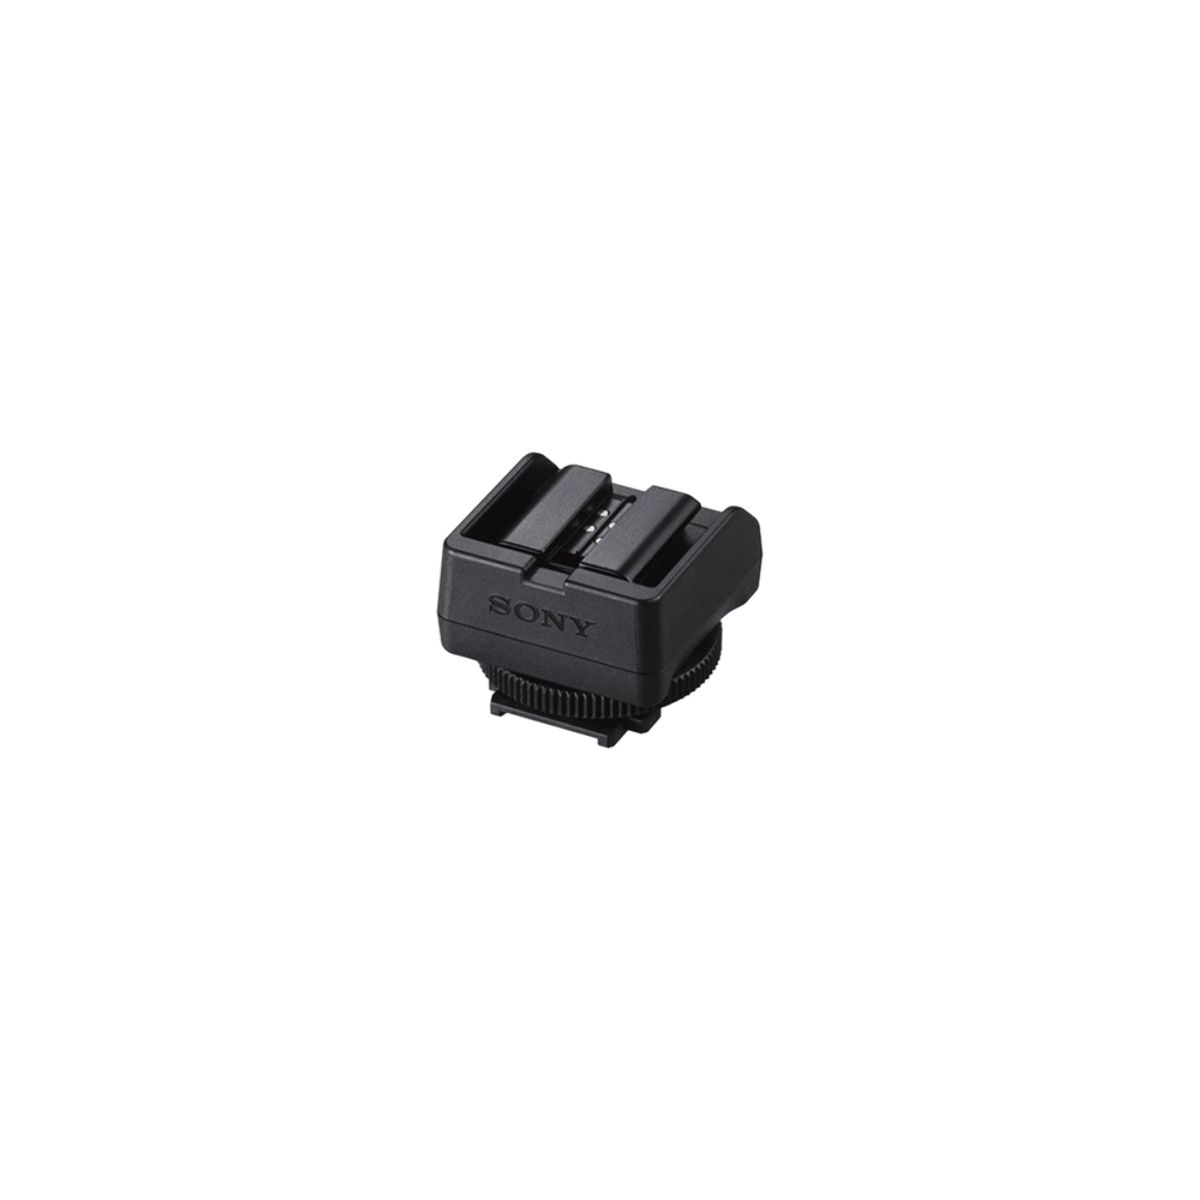 Adaptateur pour flash SONY ADP-MAA (photo)